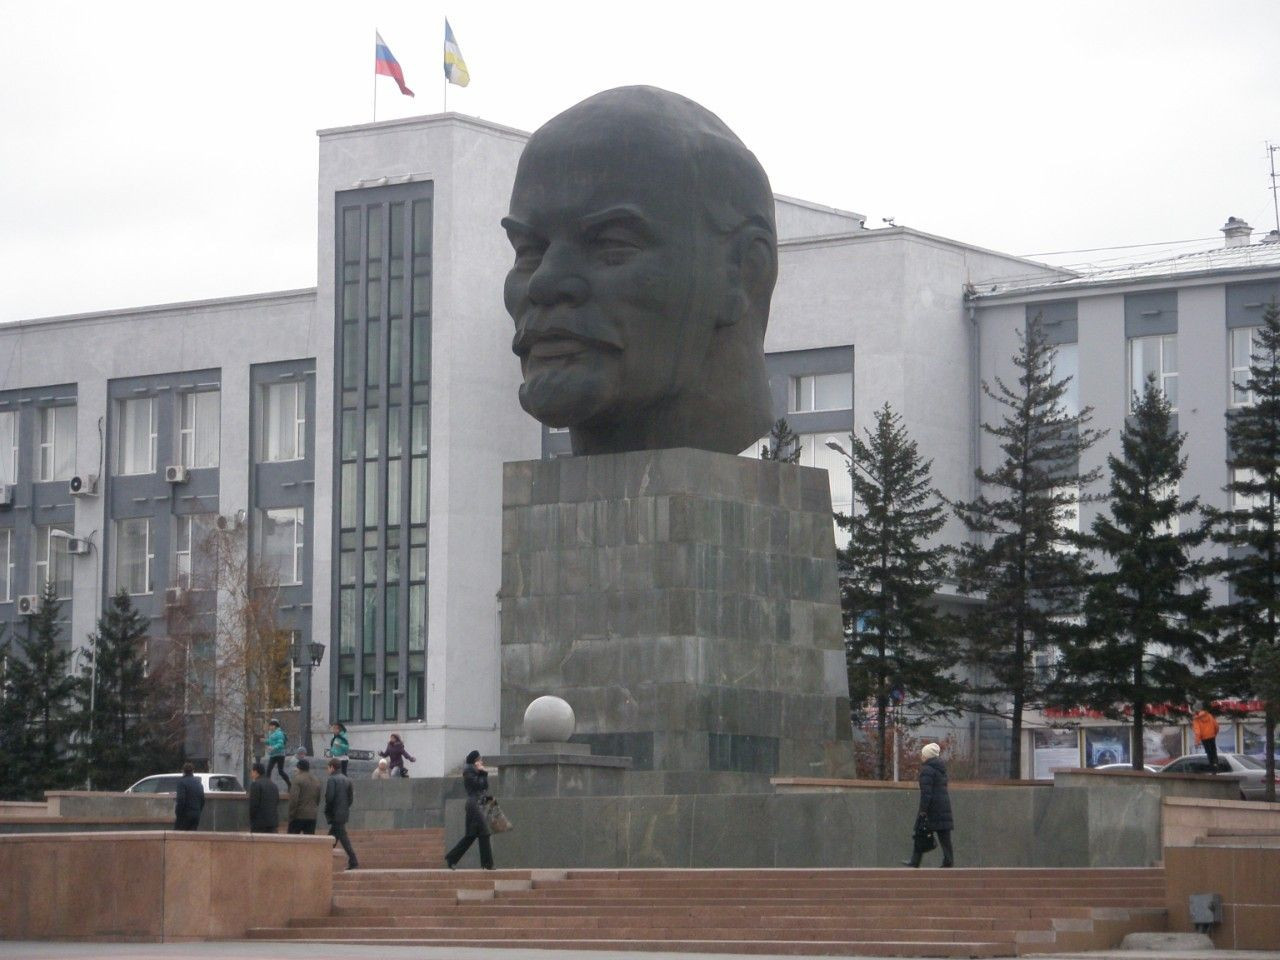 Ulan-Ude is famous for a giant statue of Vladimir Lenin ©Wikipedia